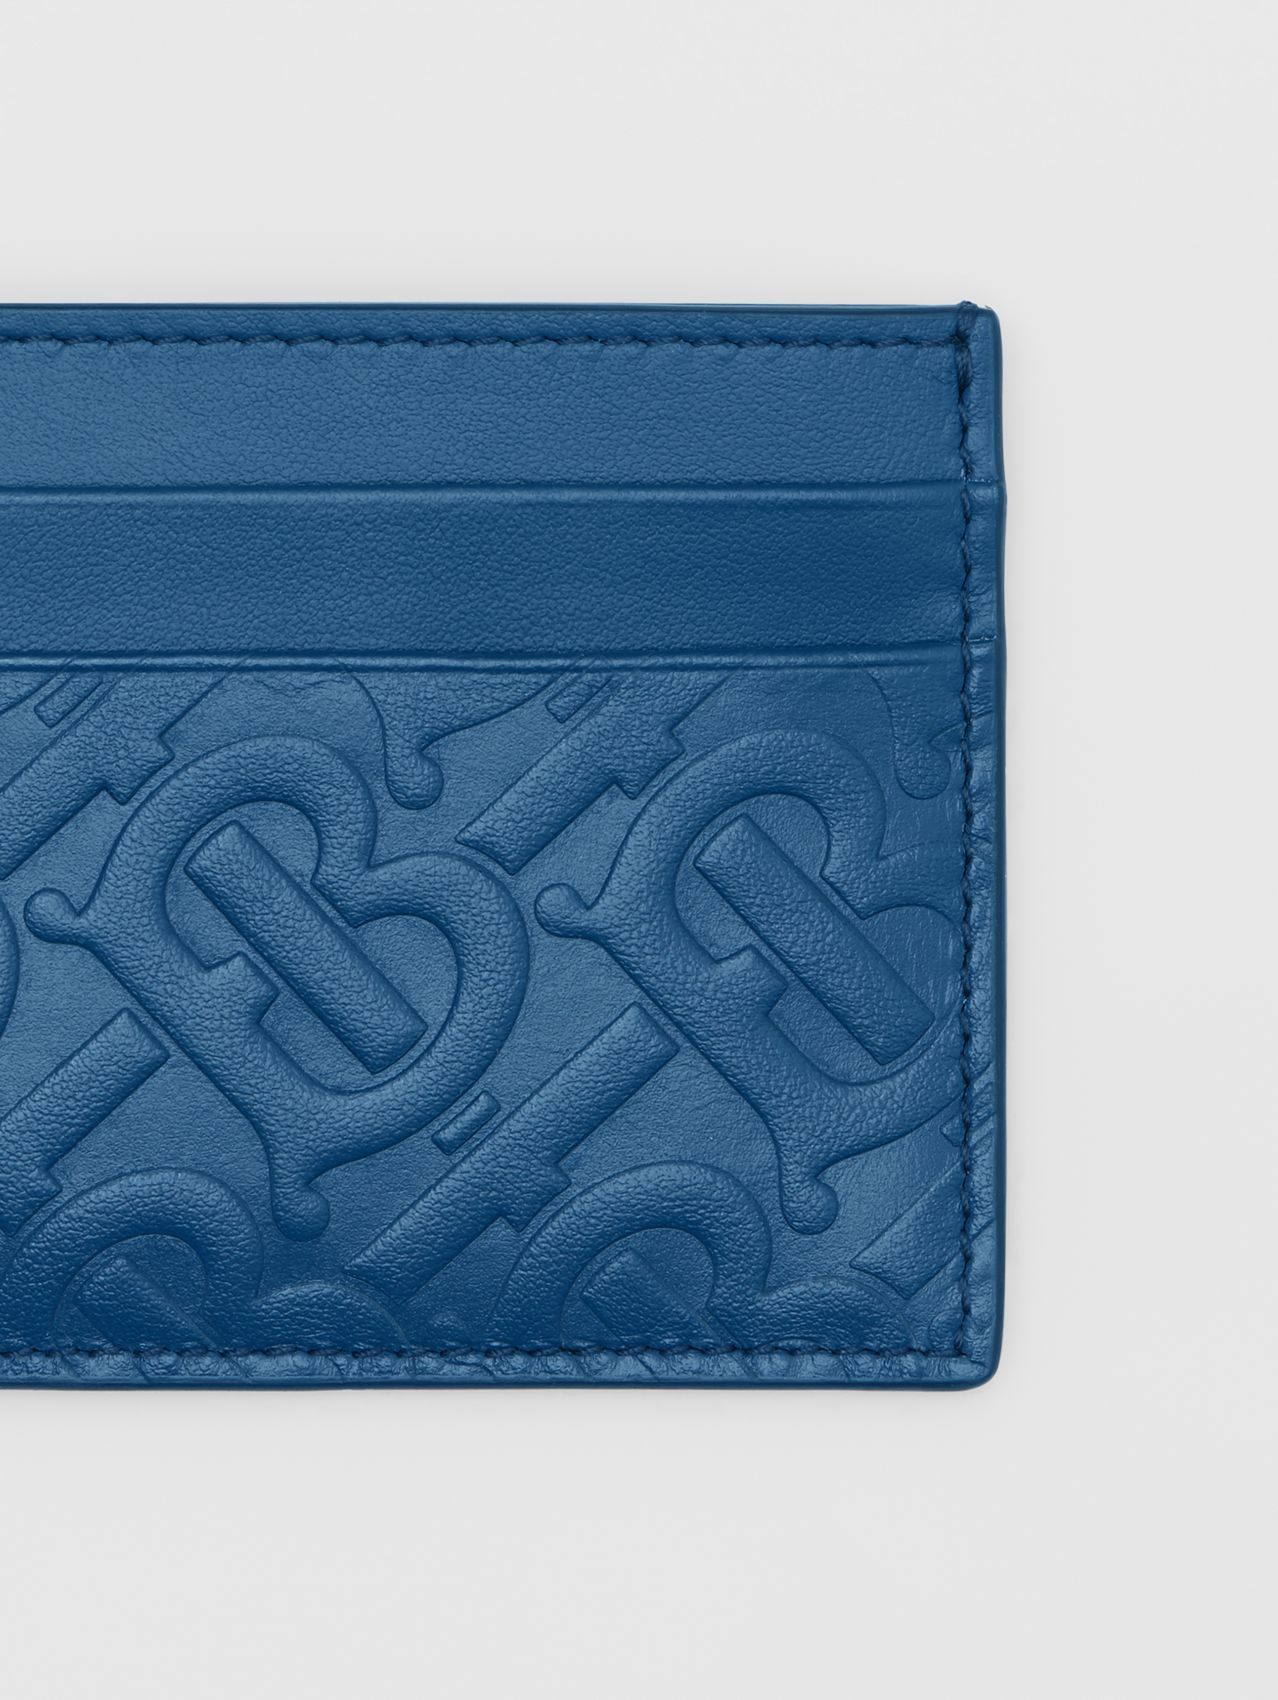 Monogram Leather Card Case in Pale Canvas Blue